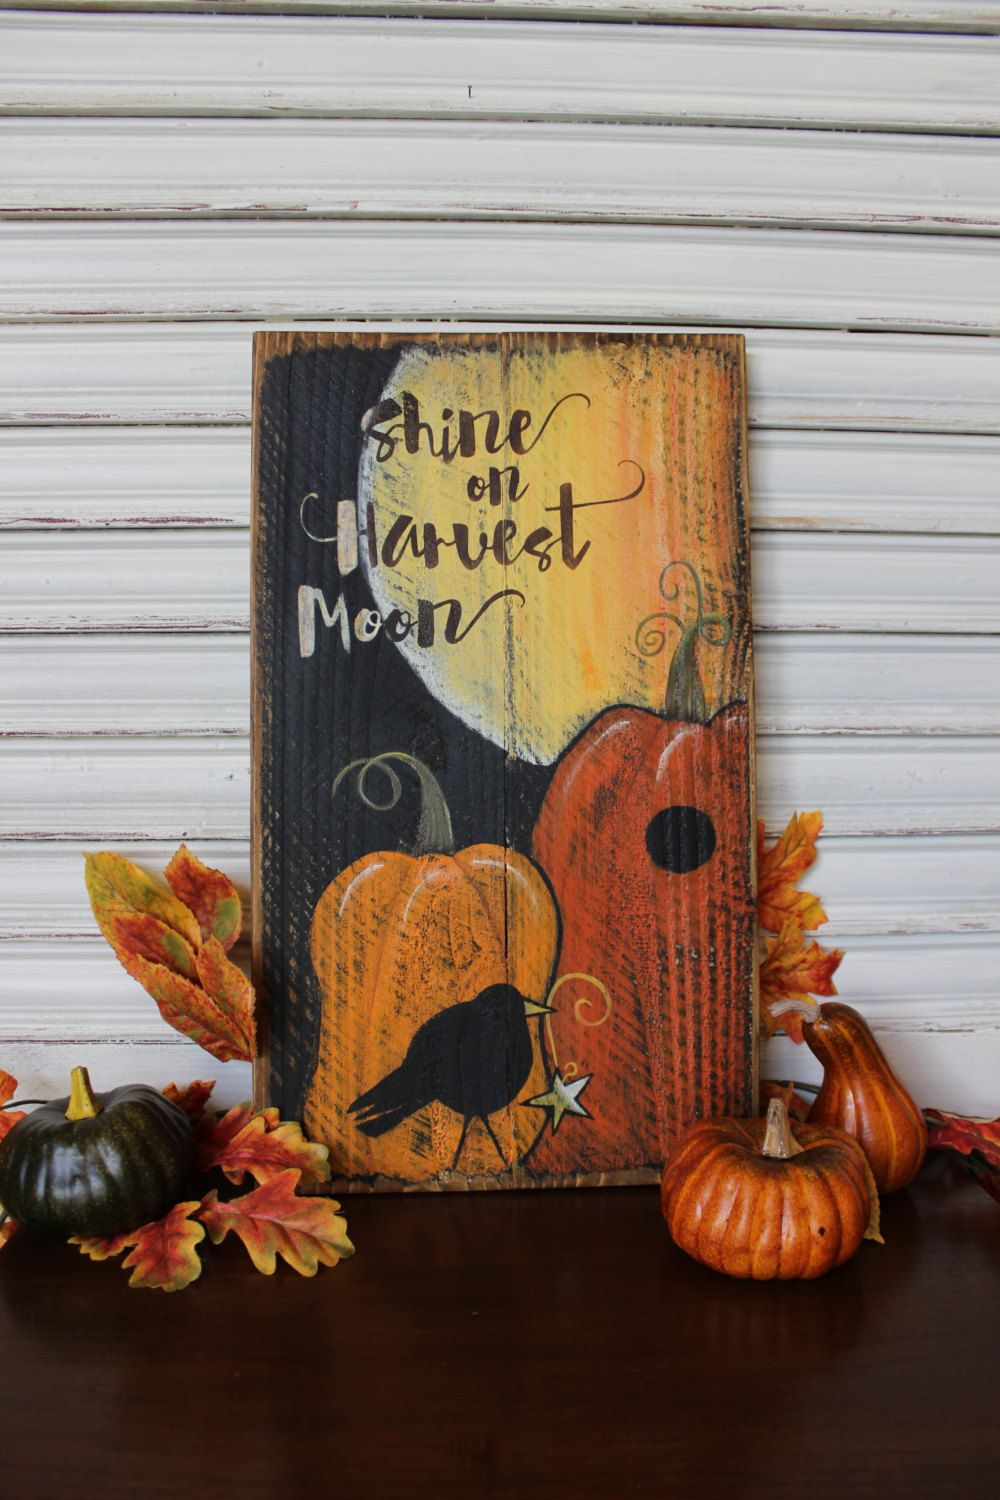 Fall decor wood sign shine on harvest moon